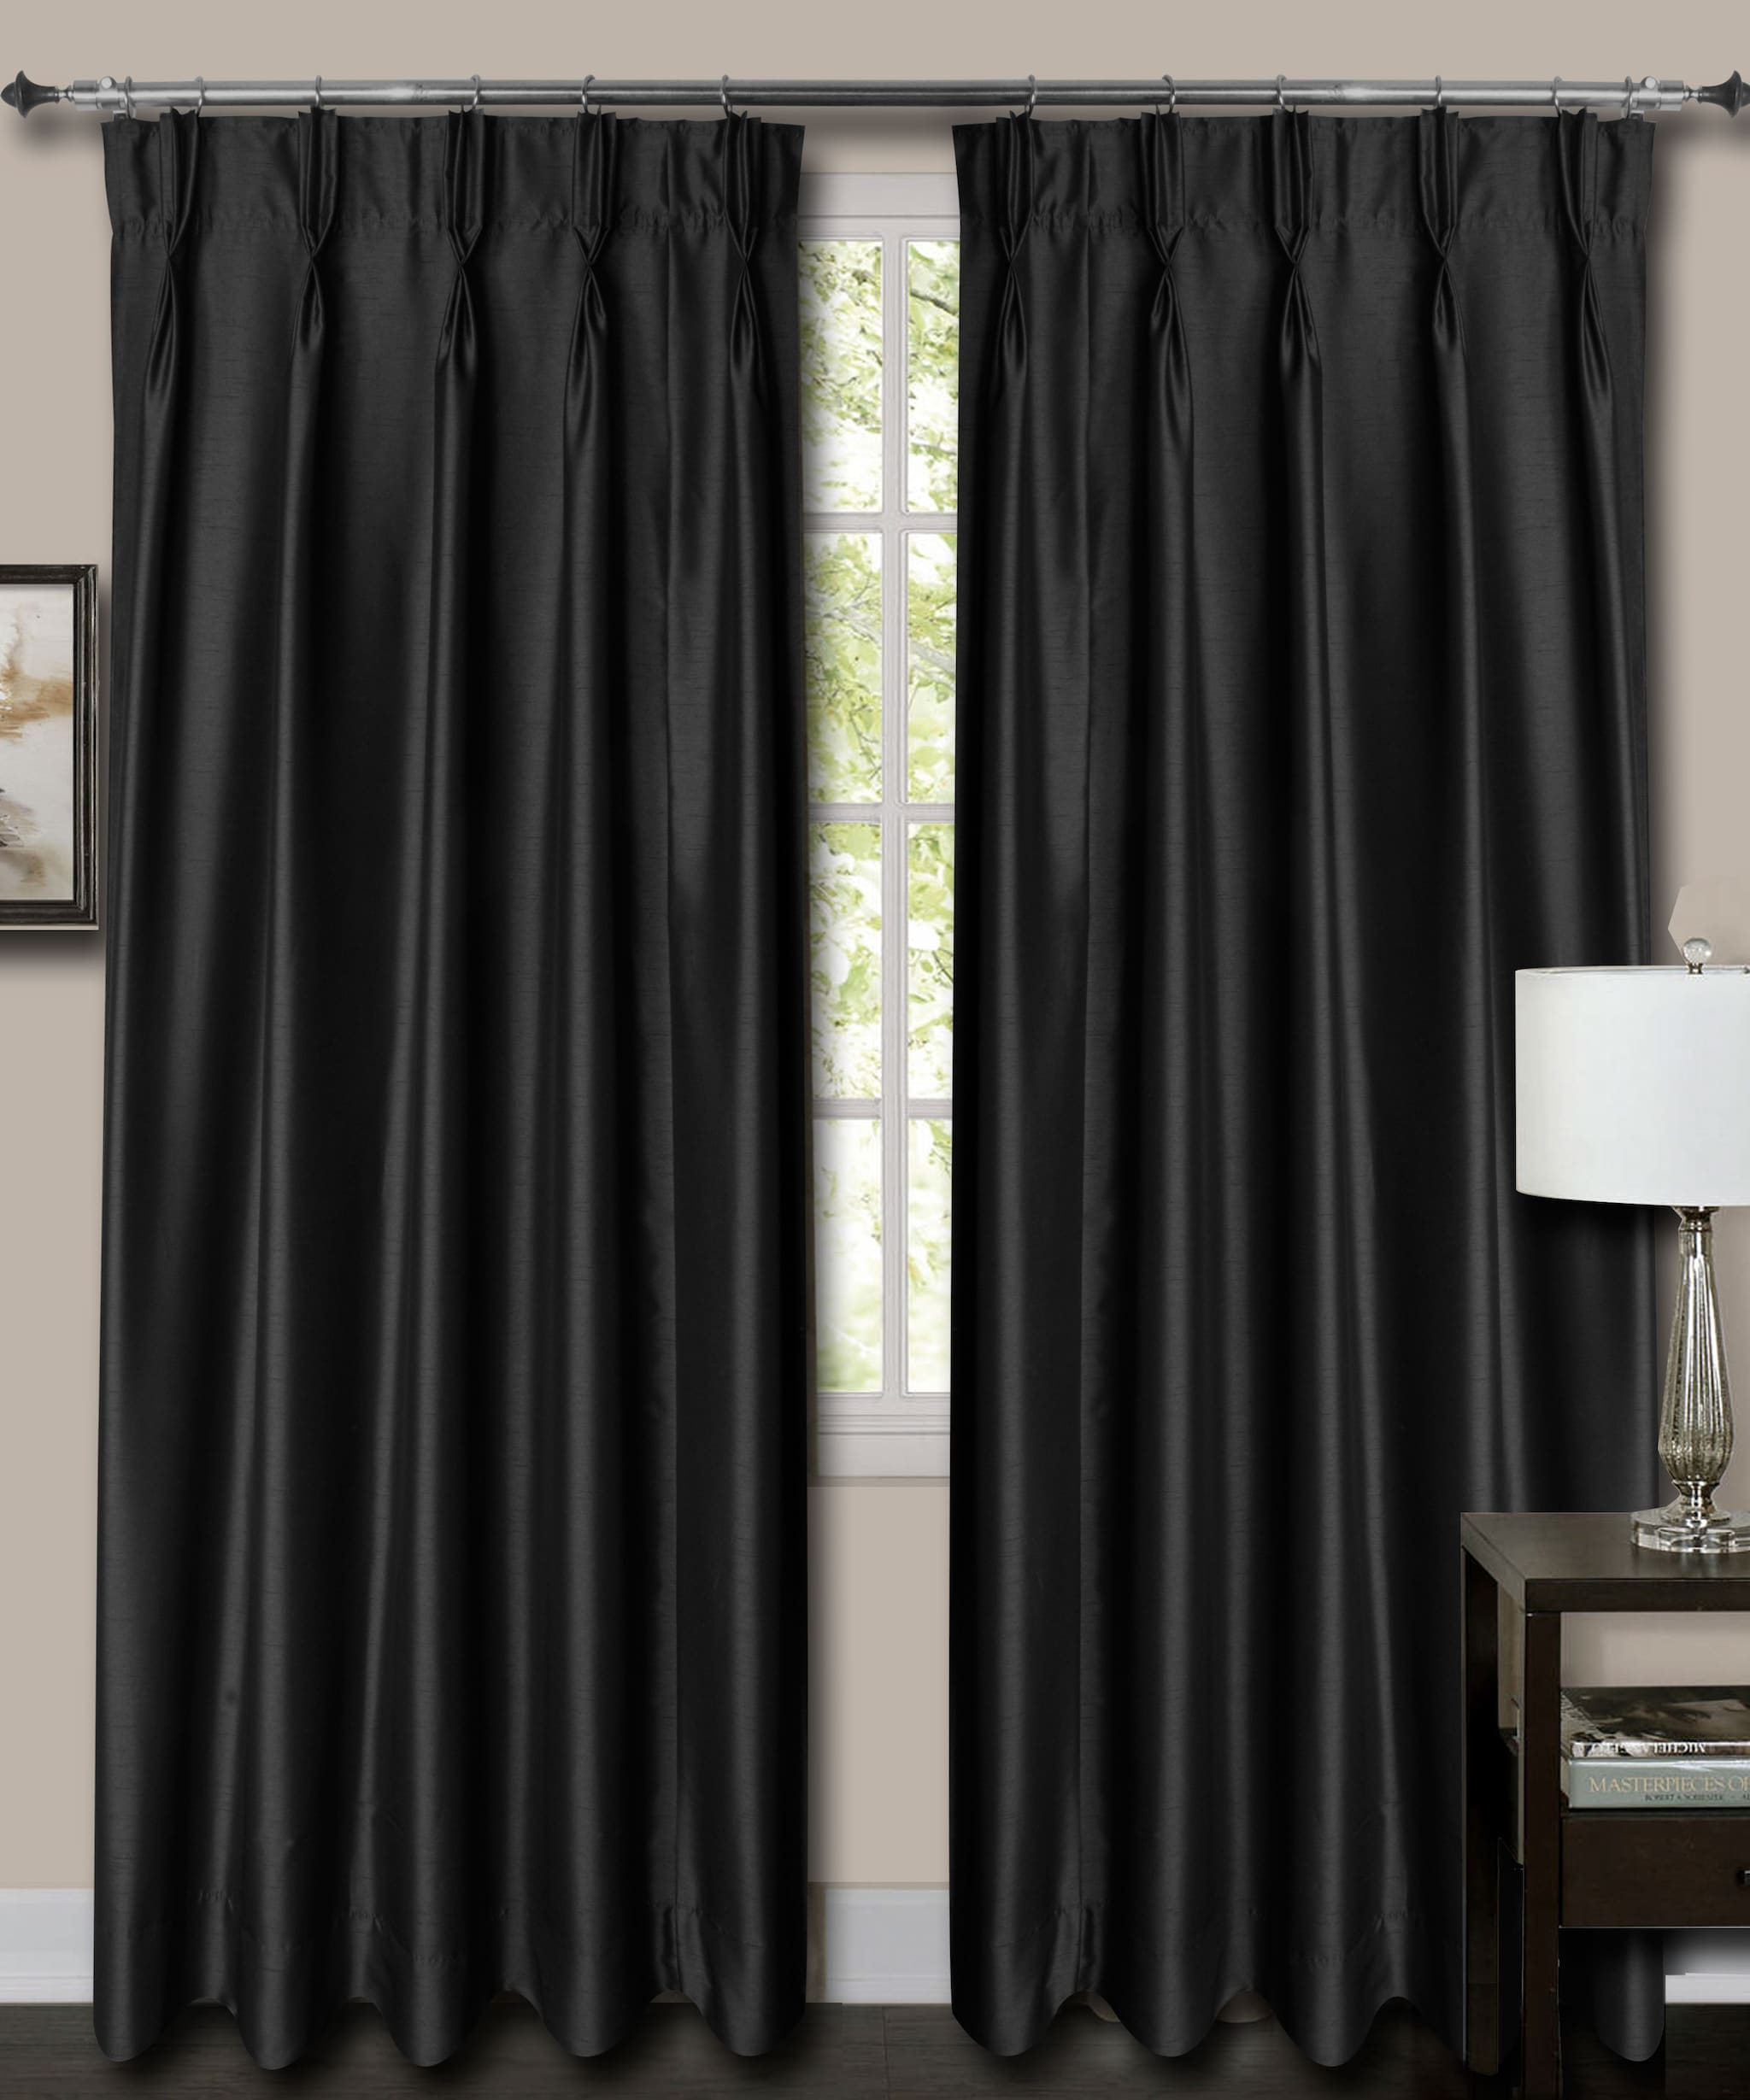 "French Pleat Top Black Faux Silk Dupioni Curtains. (78"" Wide,12 Feet Long,Without Lining)"